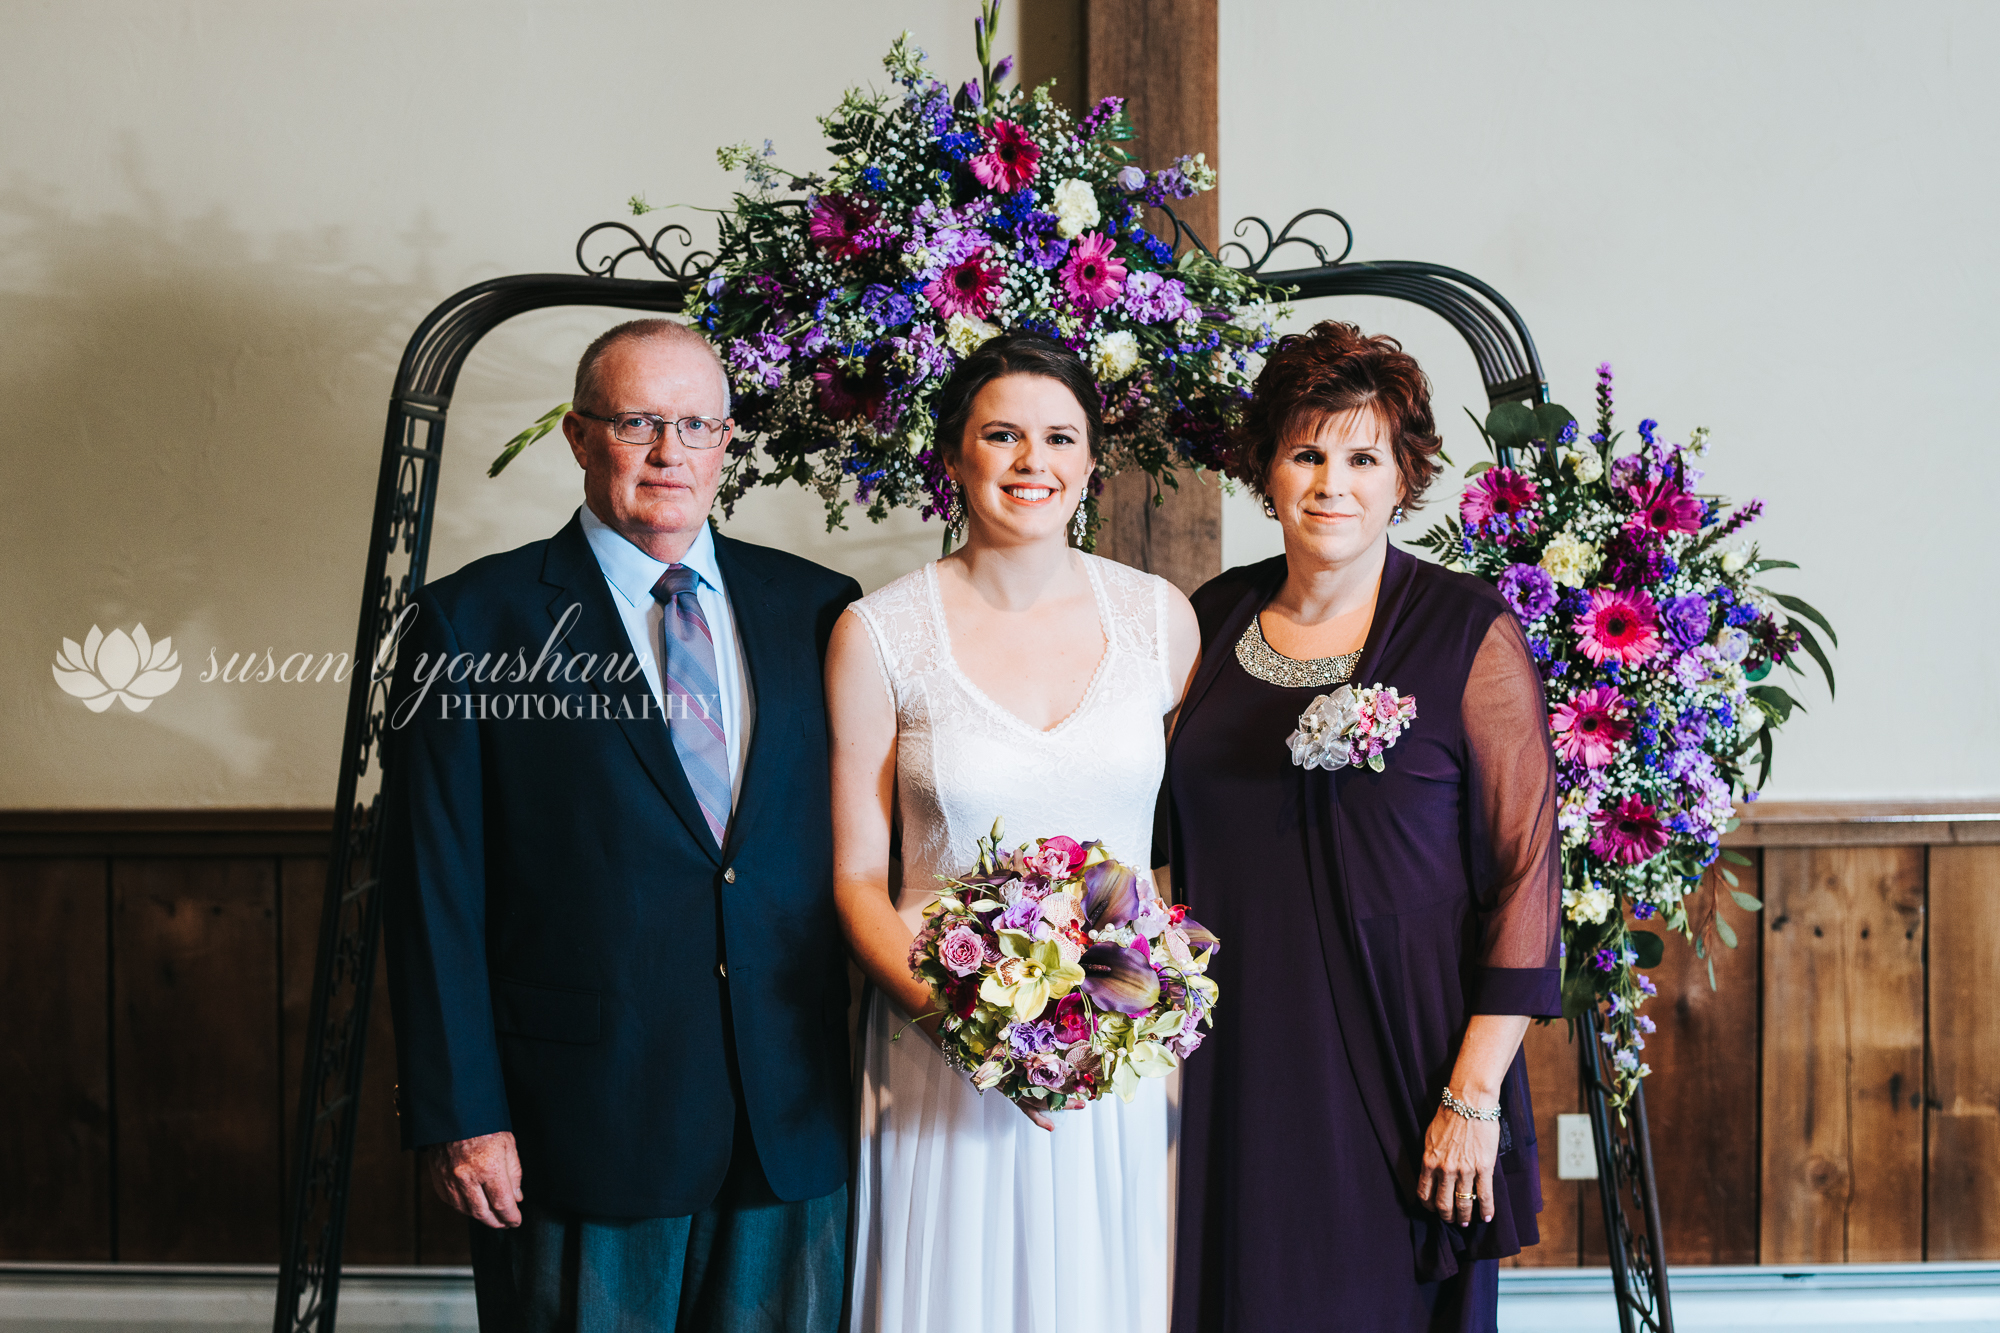 Adena and  Erik Wedding 05-17-2019 SLY Photography-62.jpg